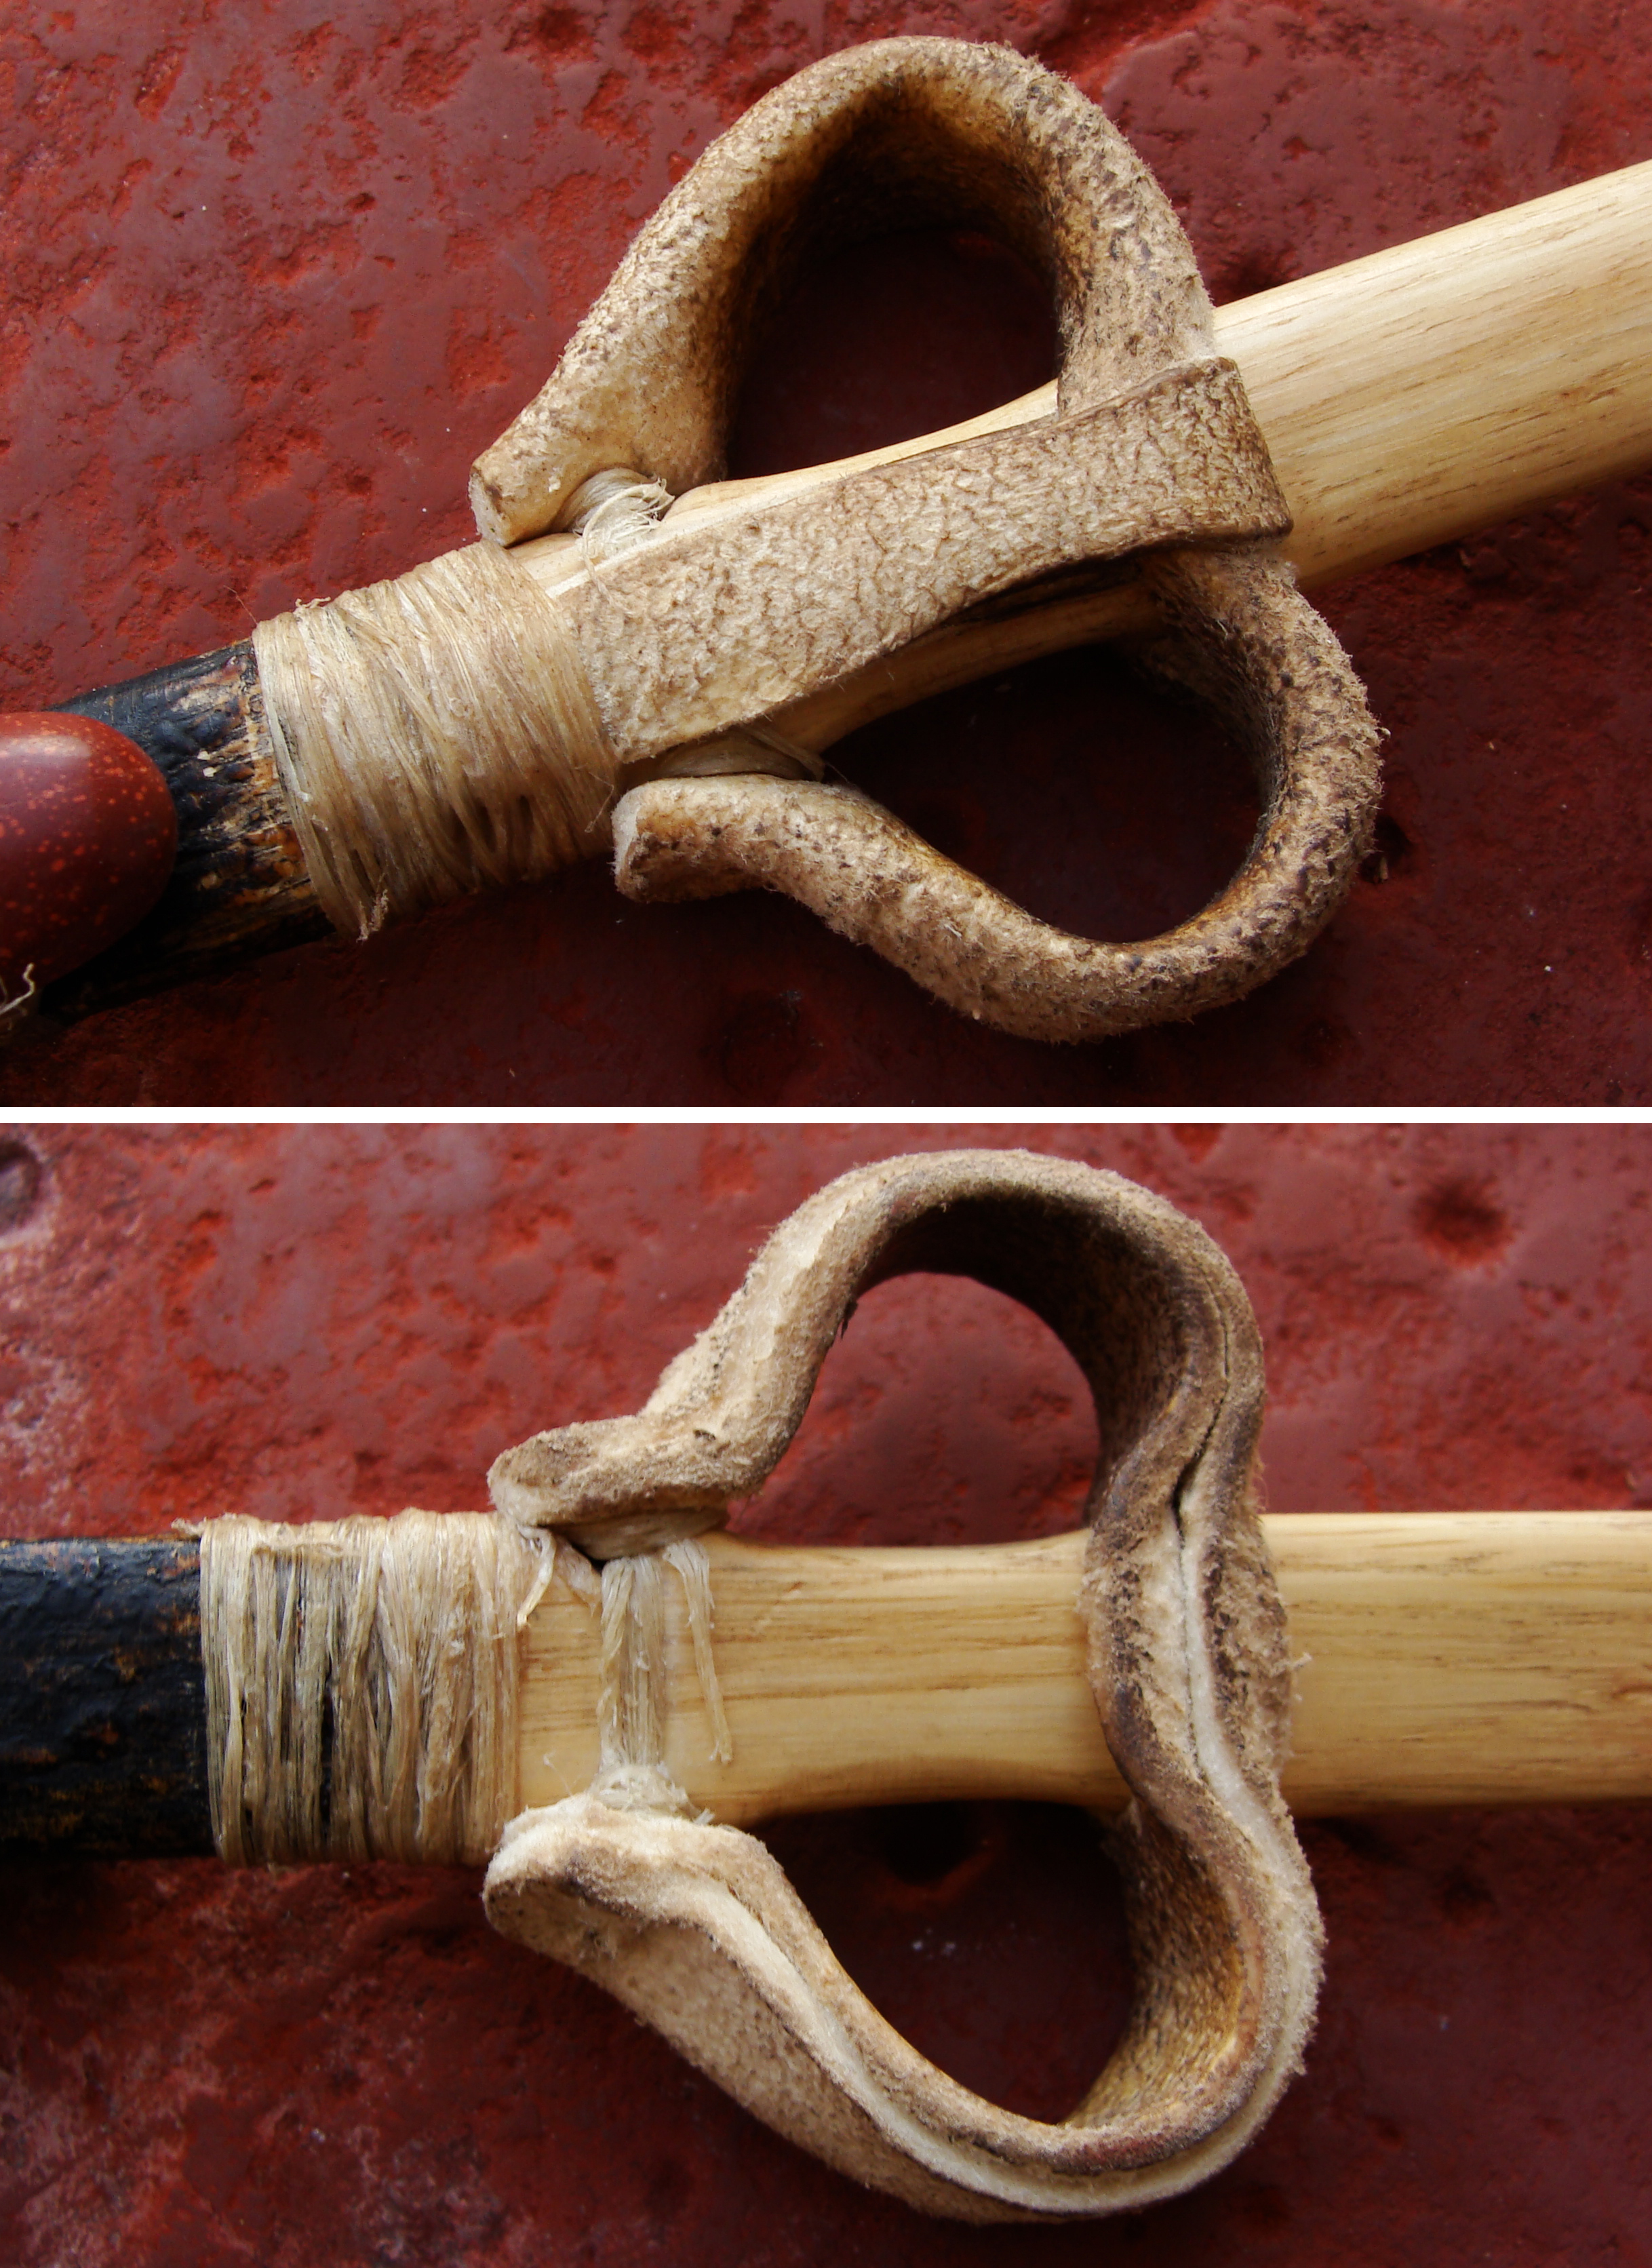 Figure 5. Close-up of the loops on the Cist 27 atlatl replica.